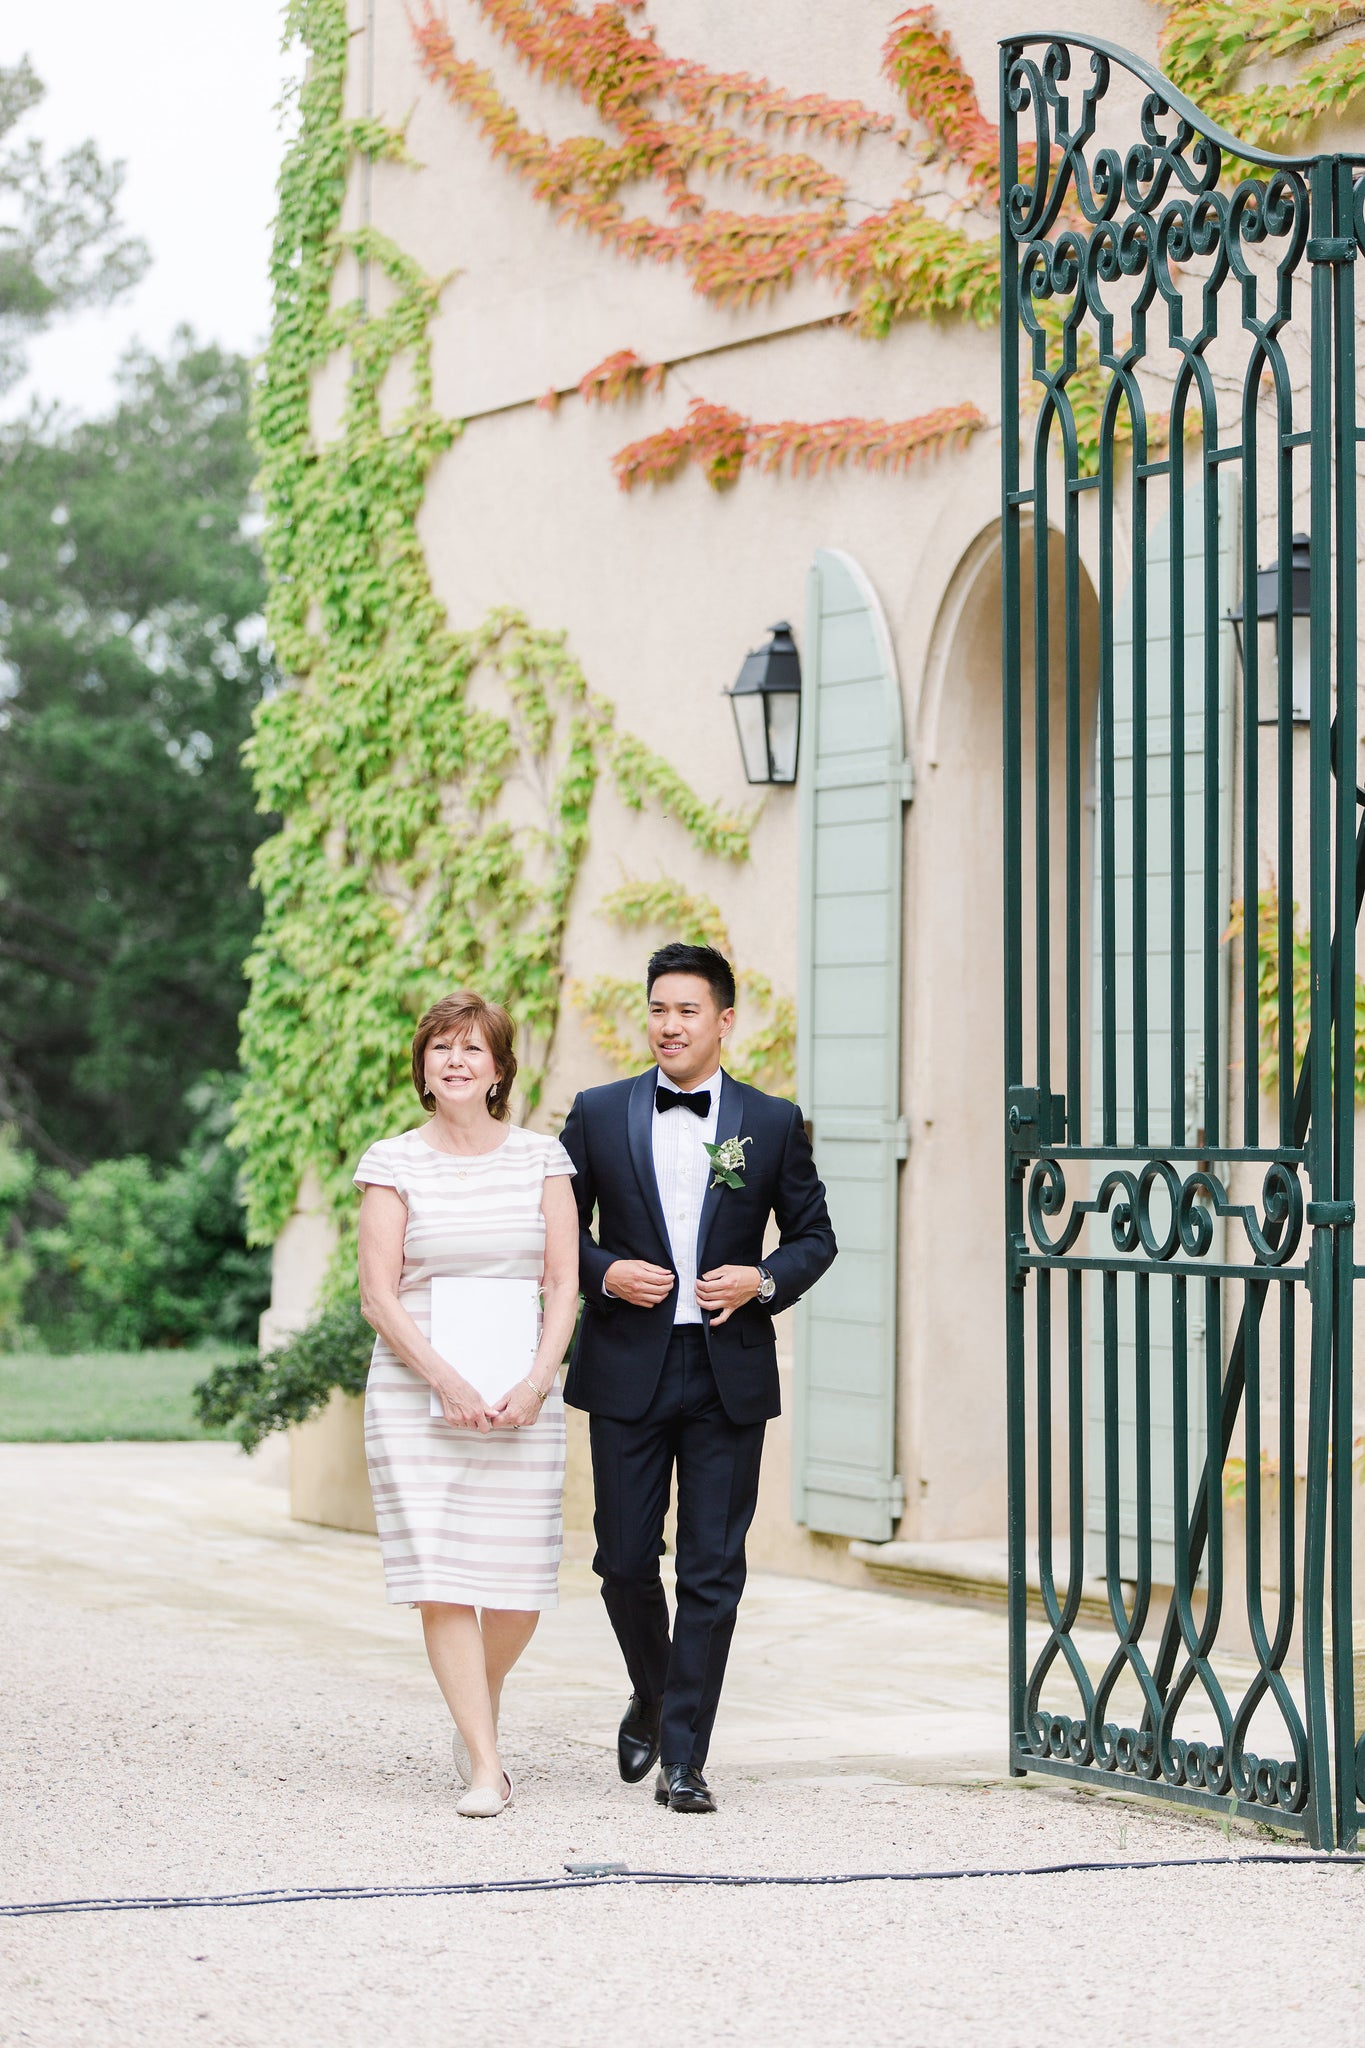 Katie Dean + Jon Tam Destination wedding, Provence, France Wedding